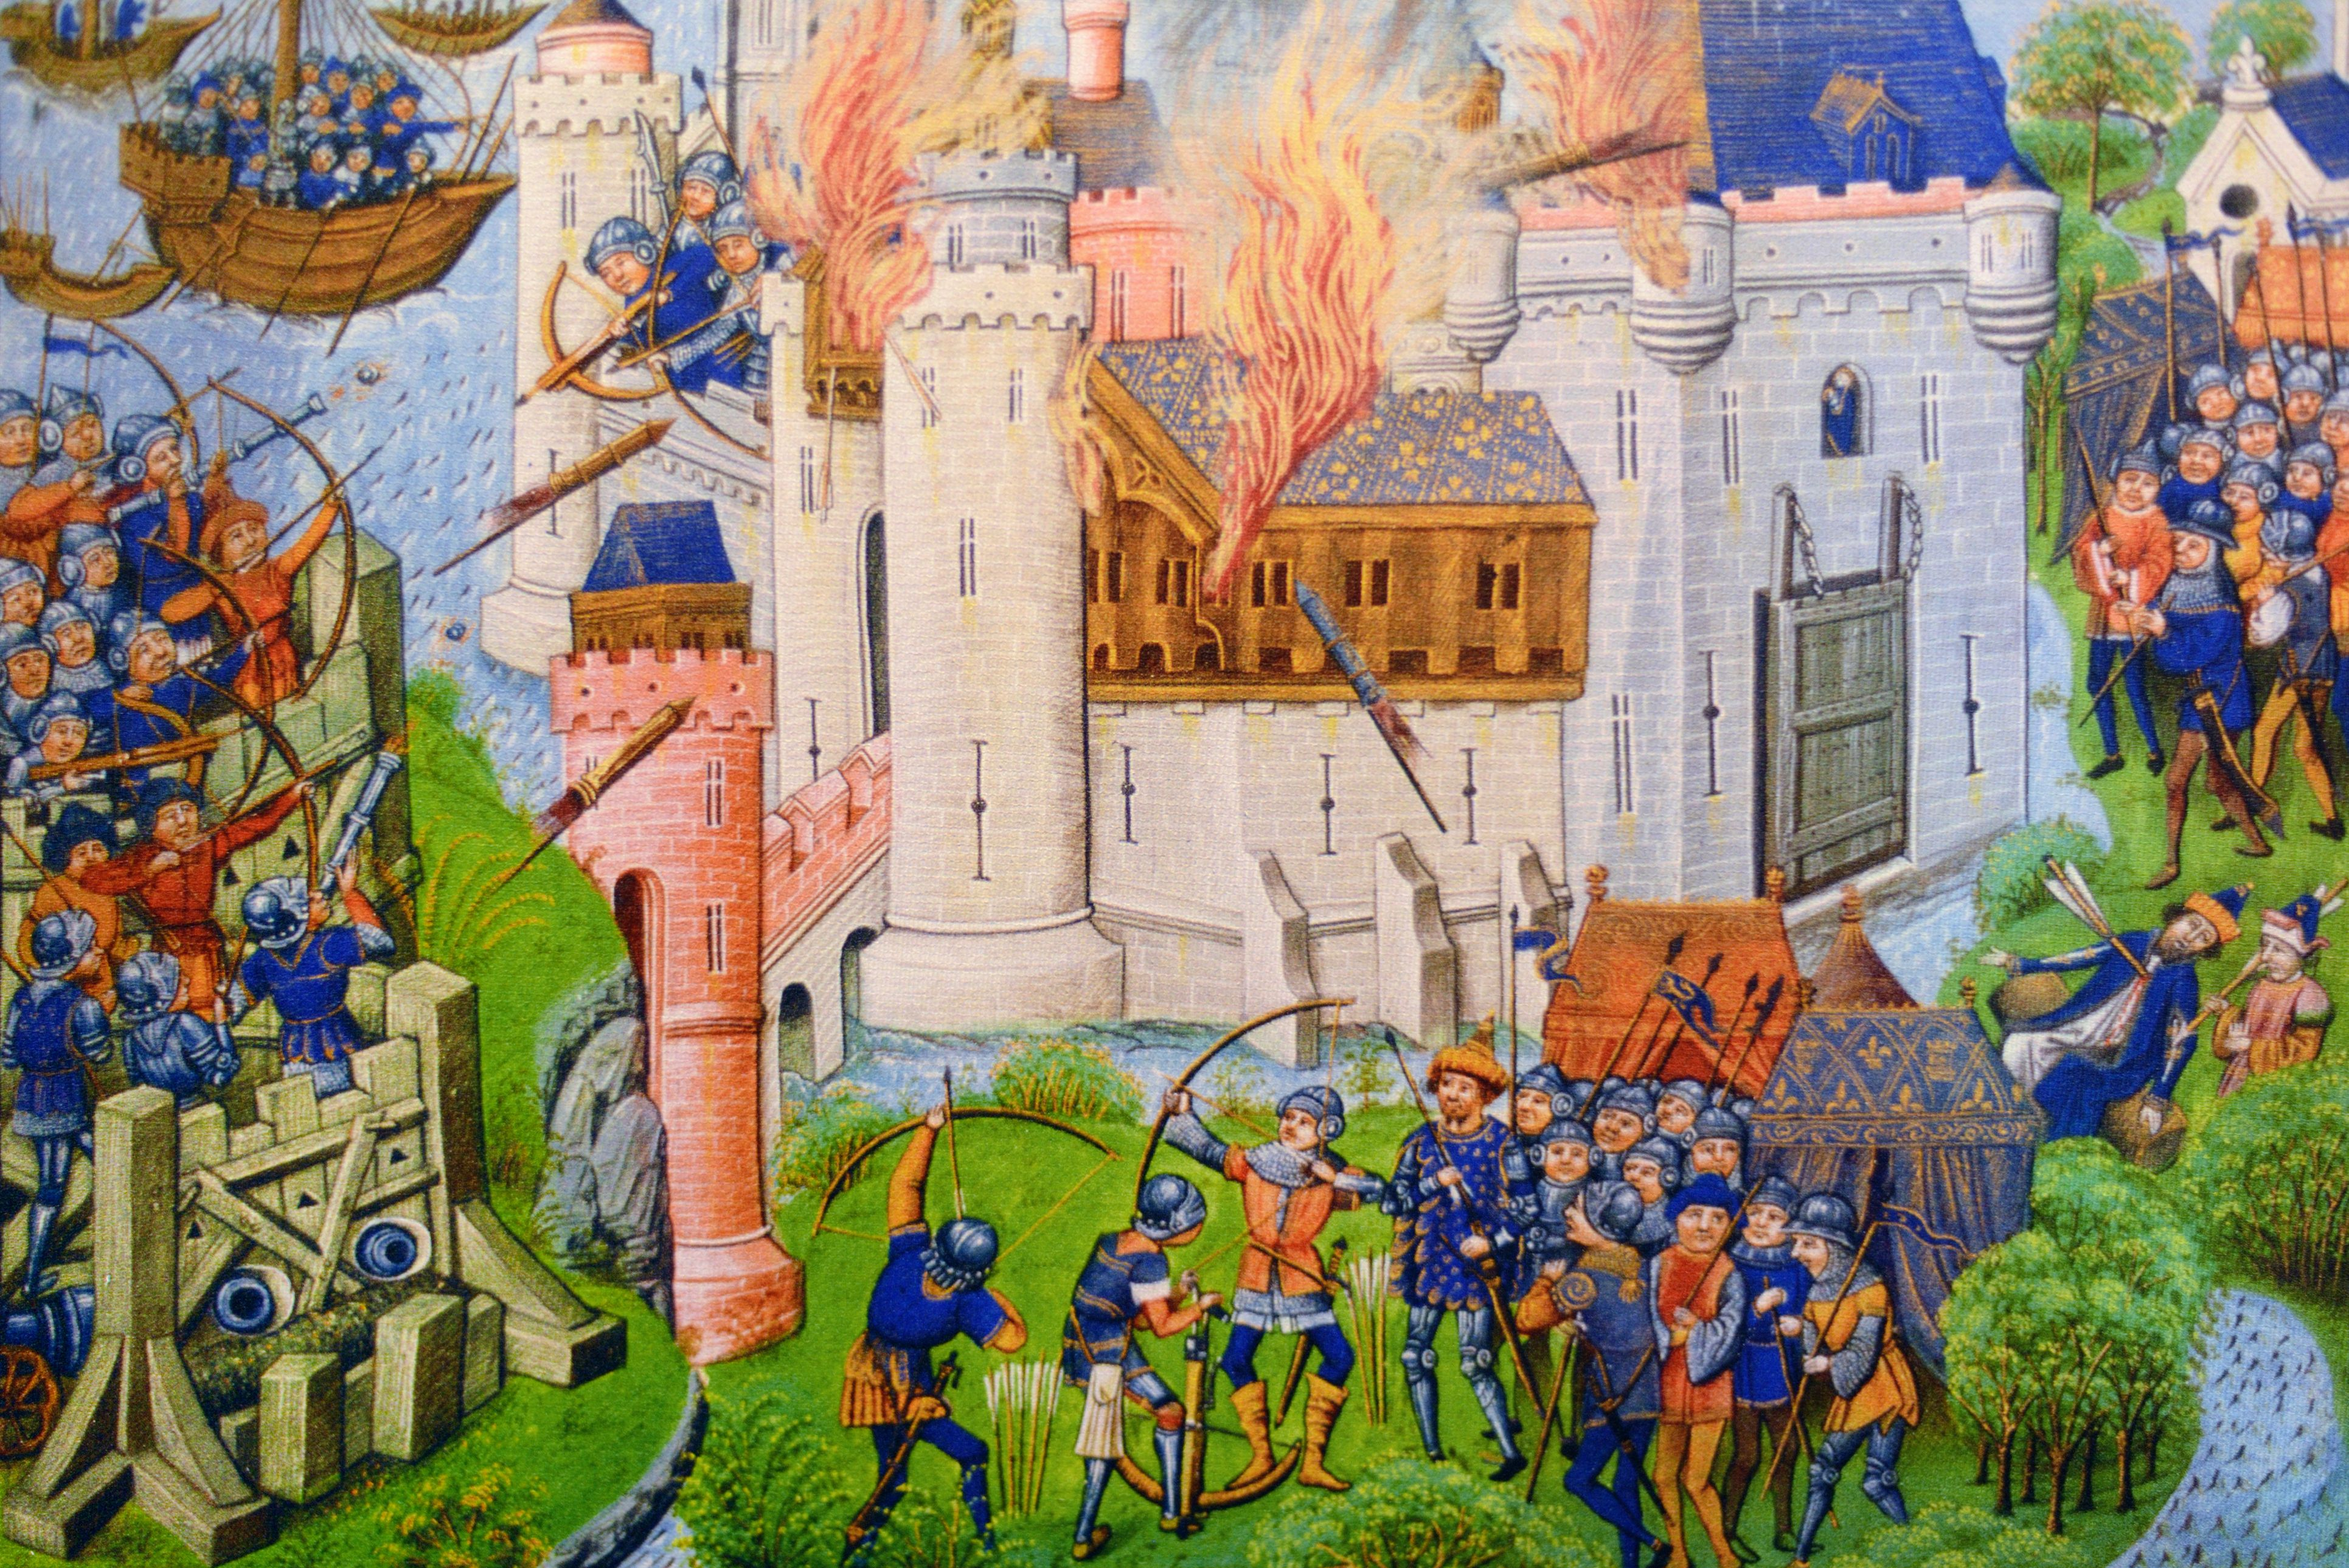 A battle scene and siege with incendiary rockets during the 100 Years War between Britain and France